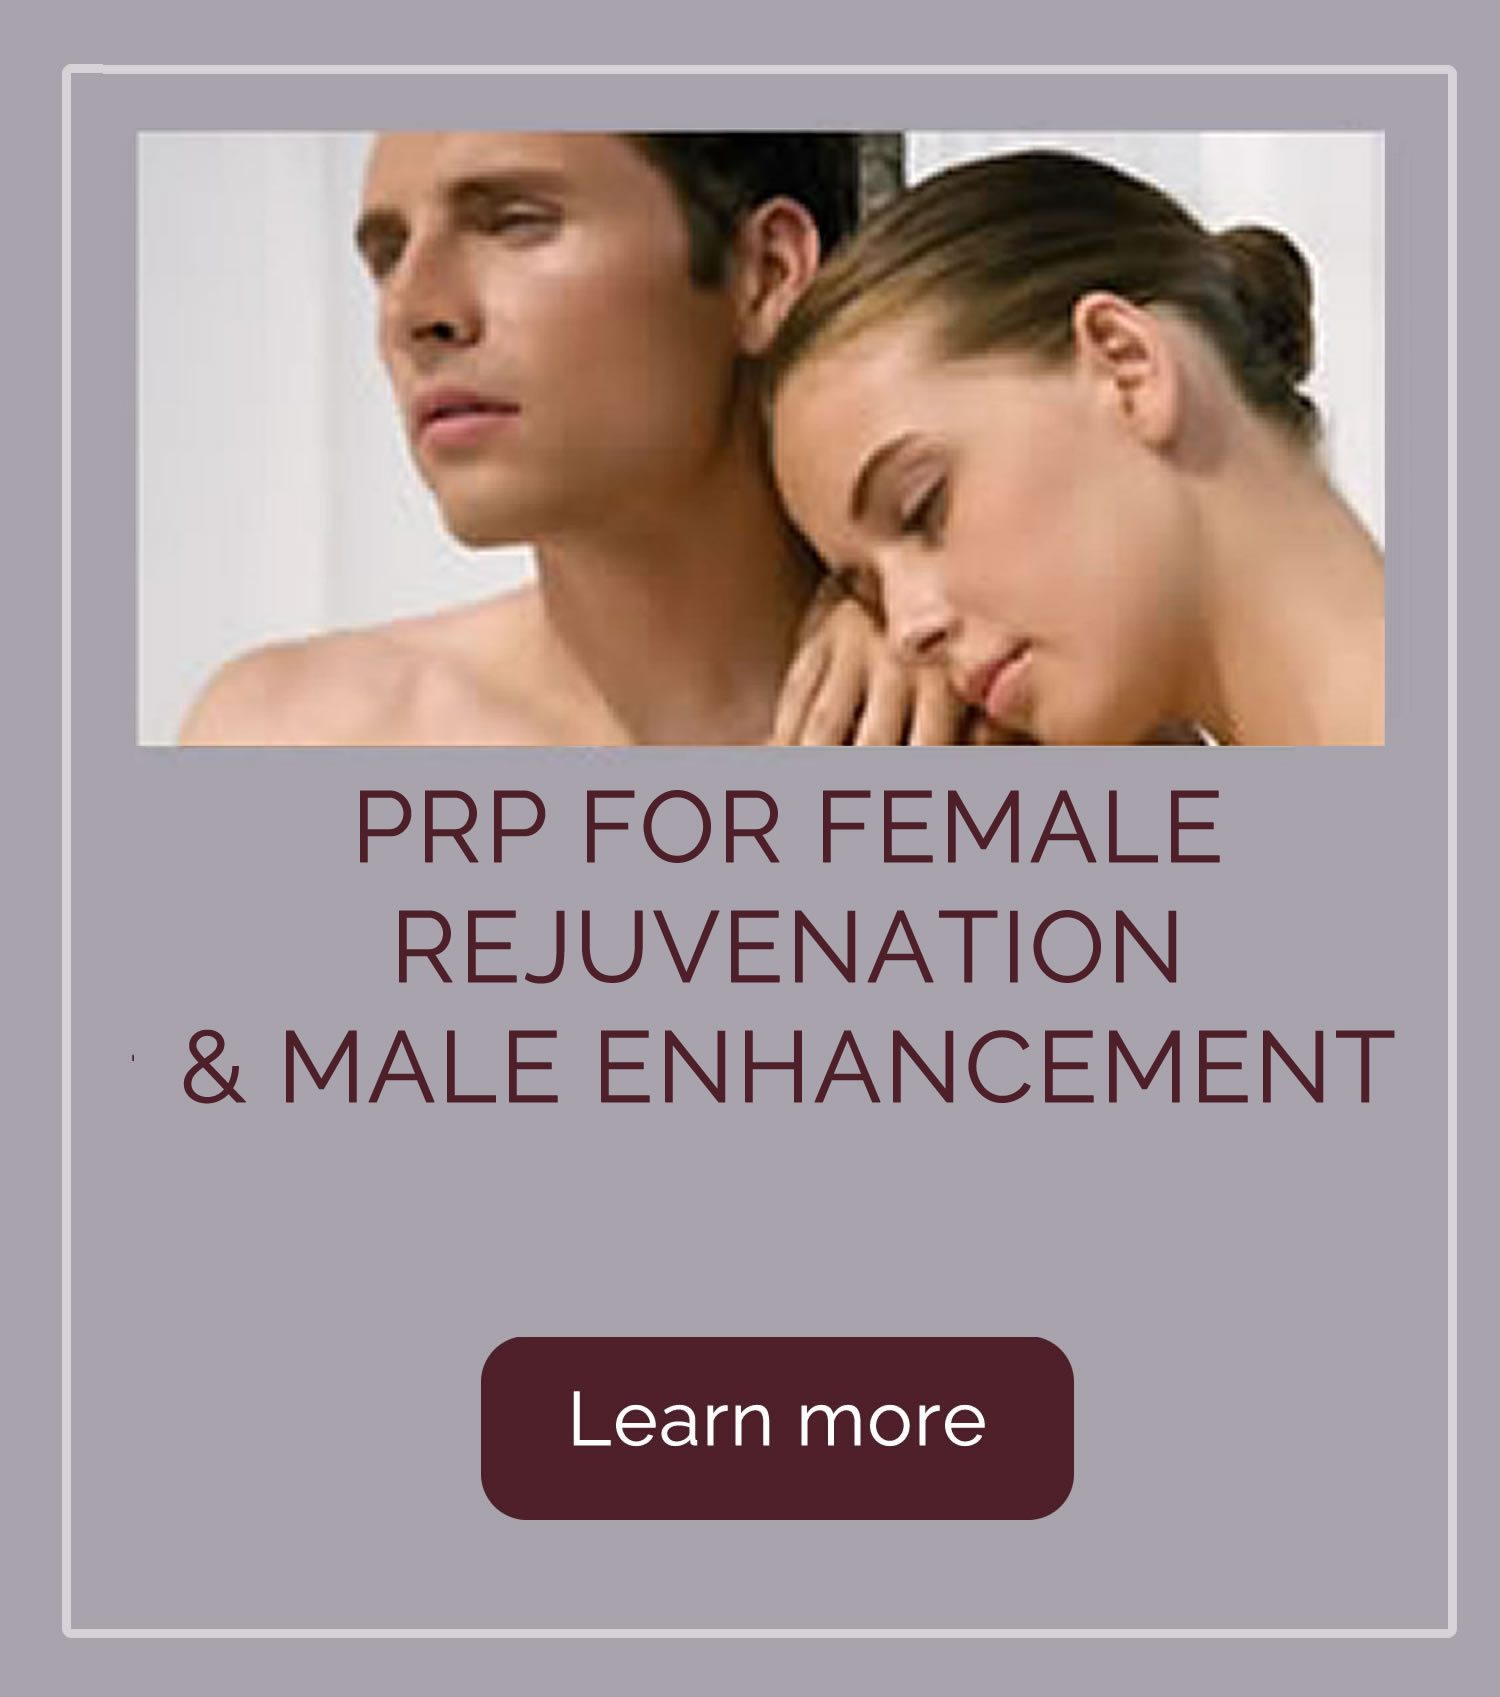 PRP for Female Rejuvenation & Male Enhancement